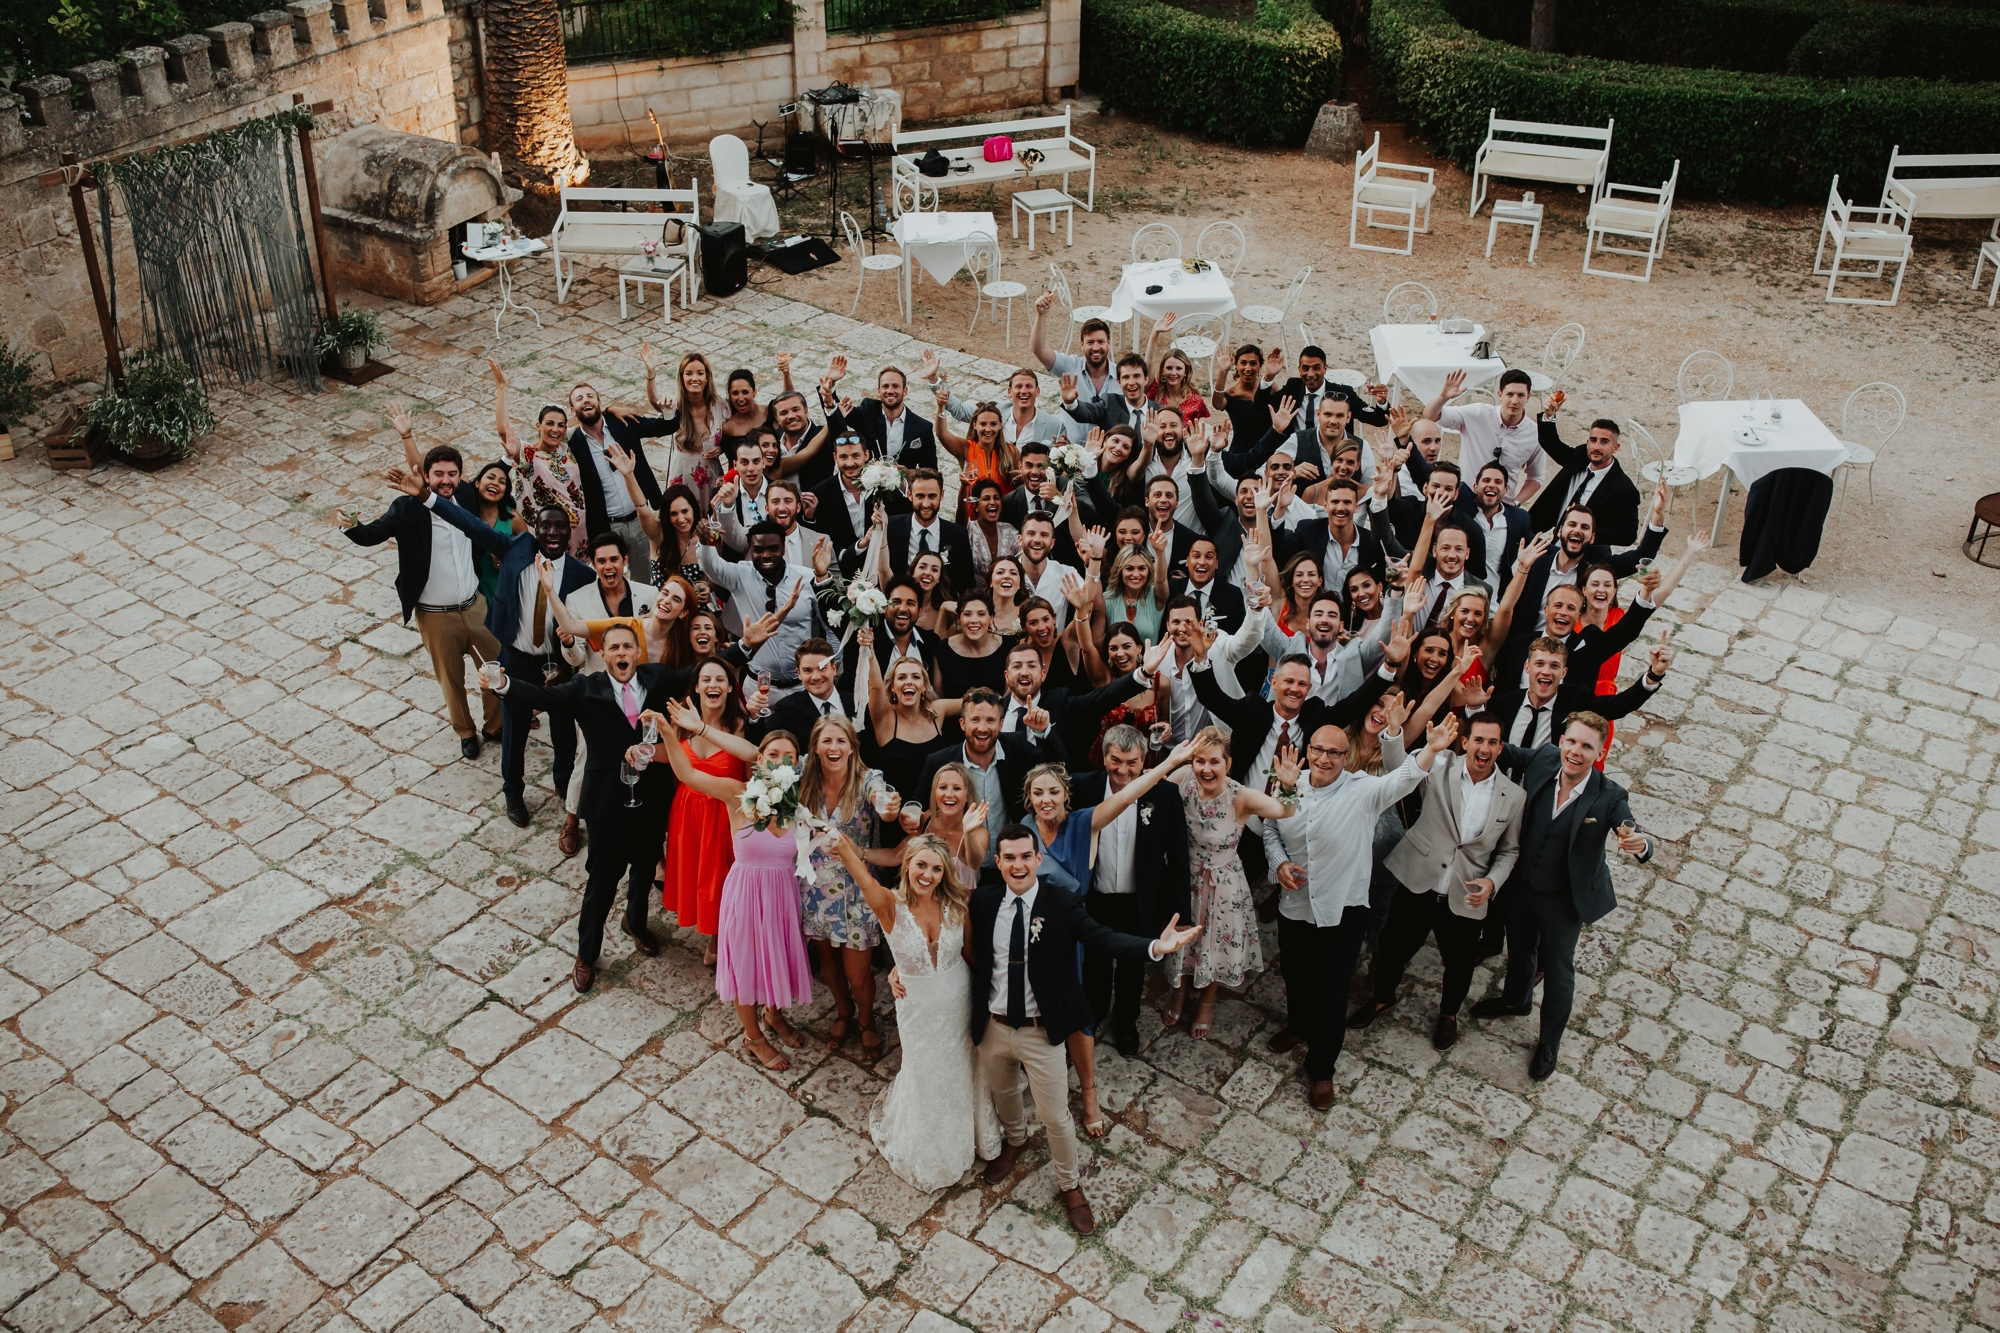 0000000059_Rob and Lucy-767_Weddings_Destination_Italy_got_Just_Engaged.jpg